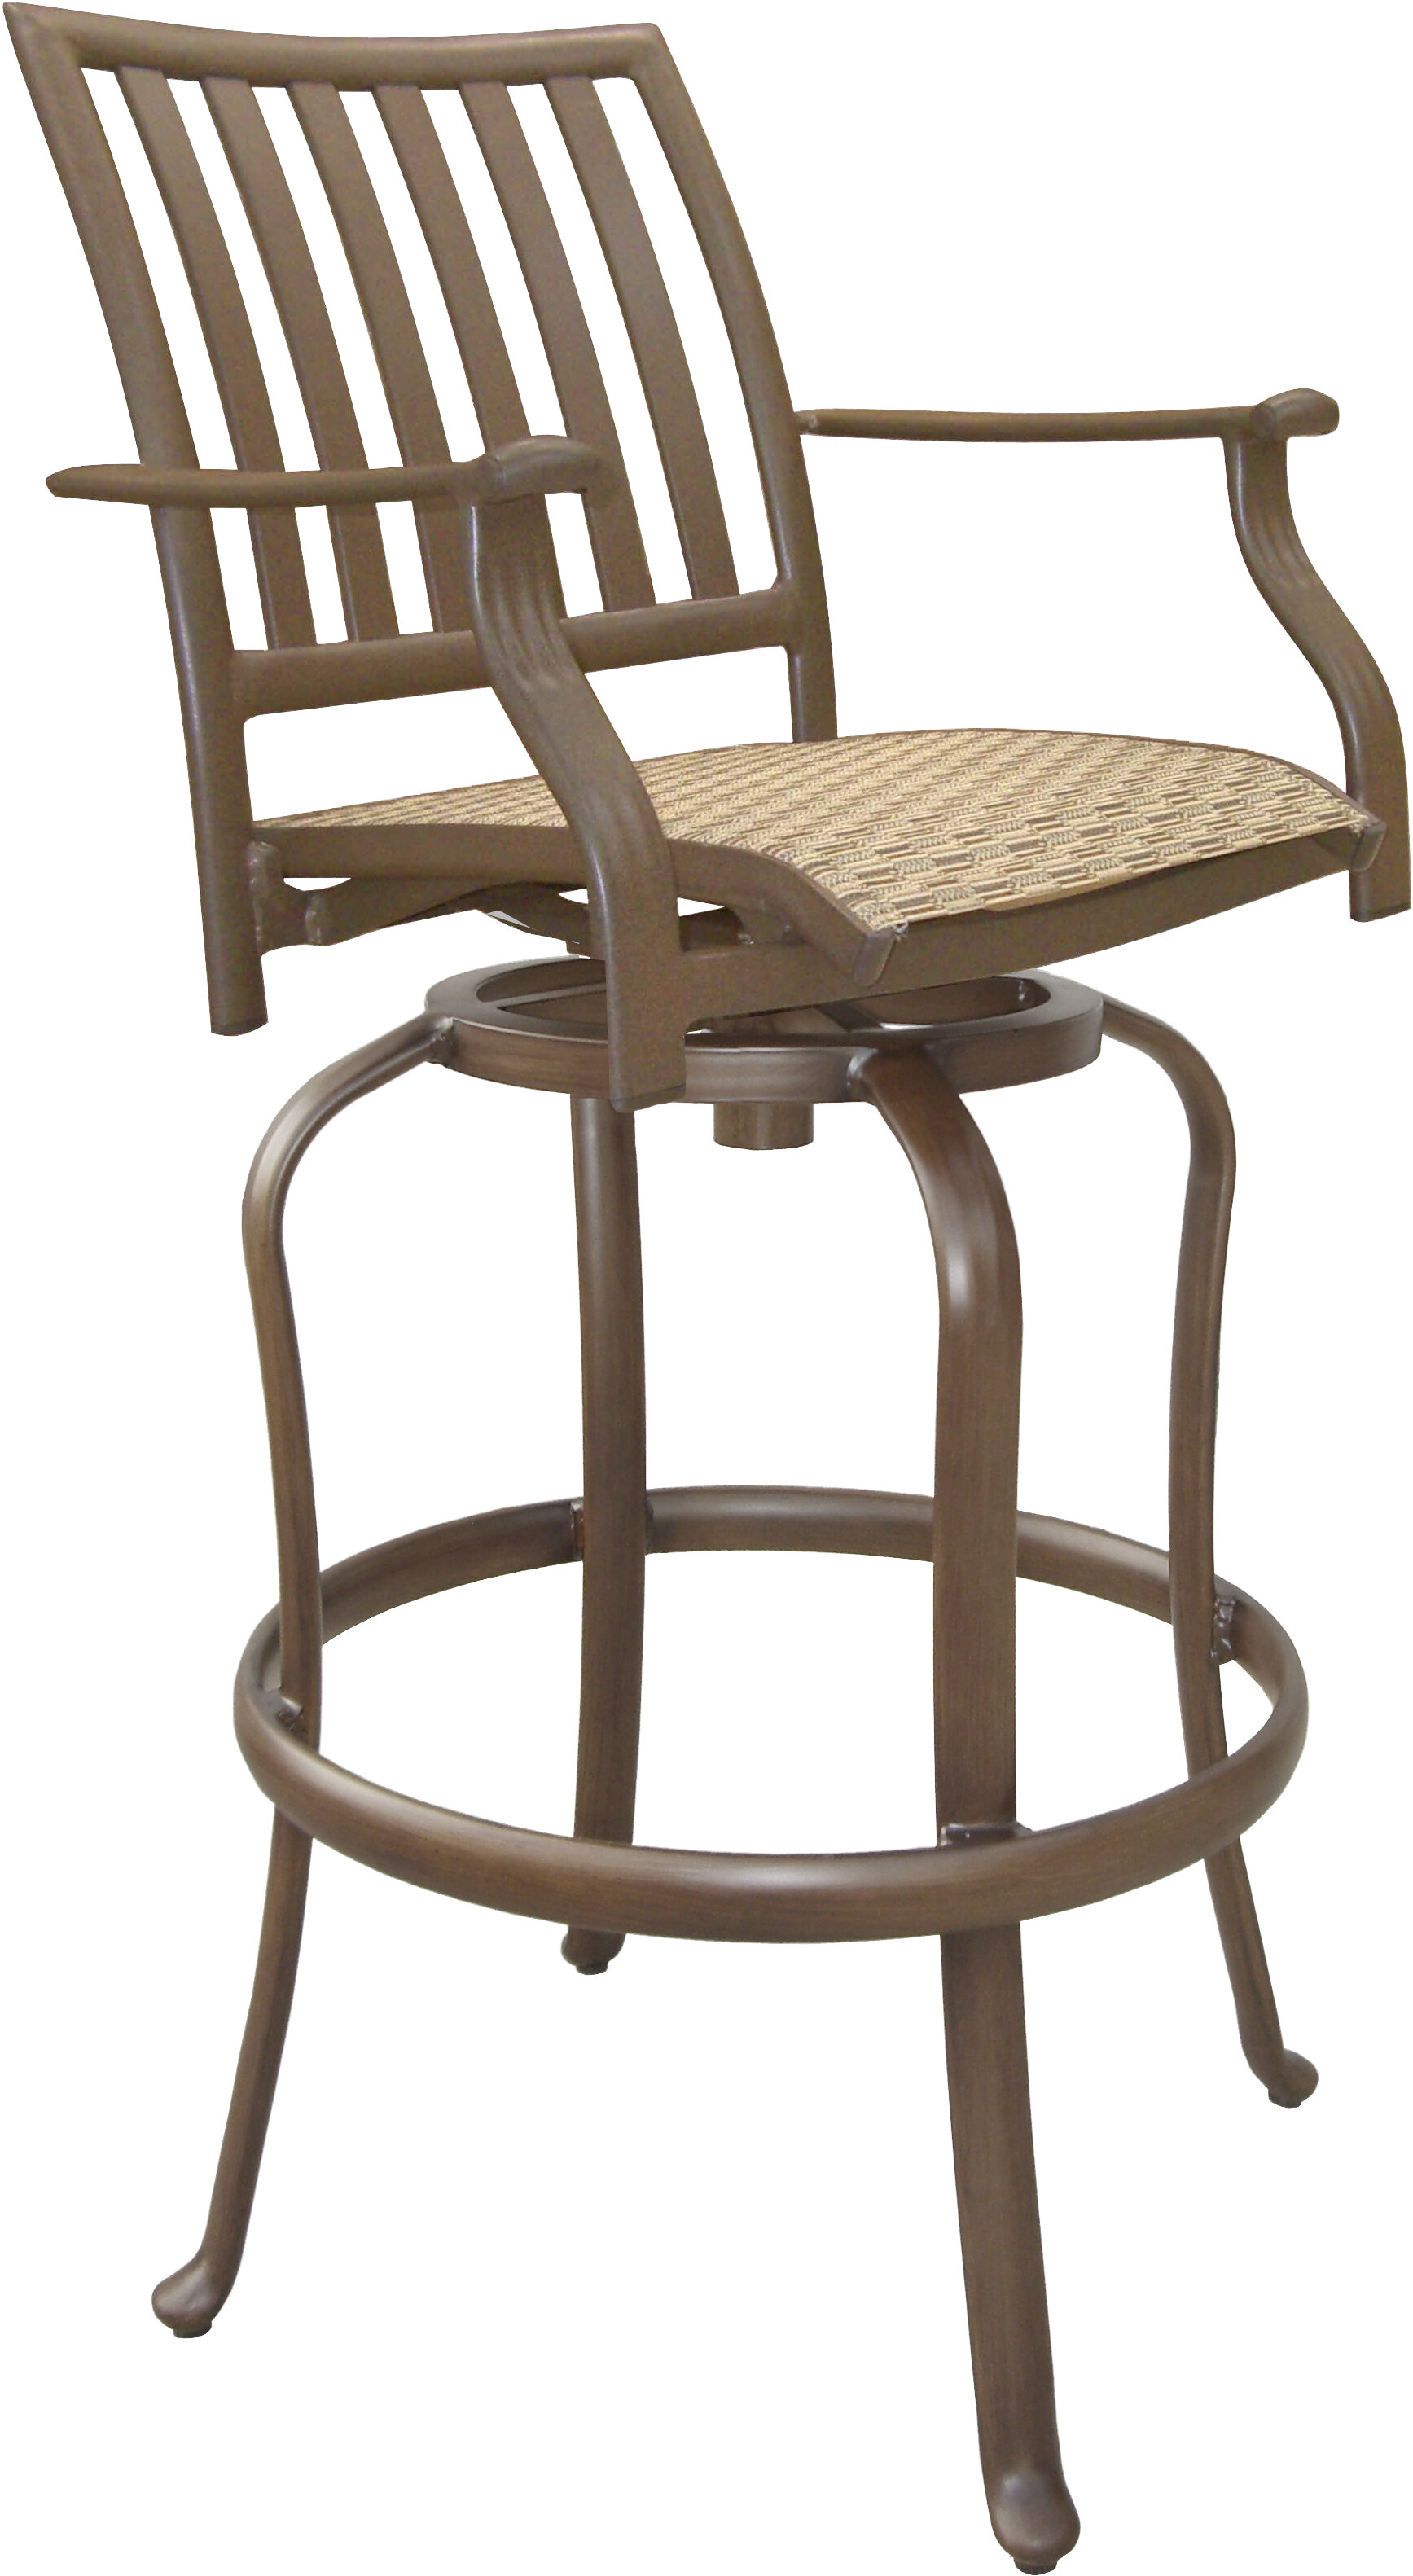 hilarious boca sling outdoor cast cupboard balcony fortunoff aluminum carroll s bar square thrifty furniture ideas patiowicker restaurant bellagio table patio raton ga robust